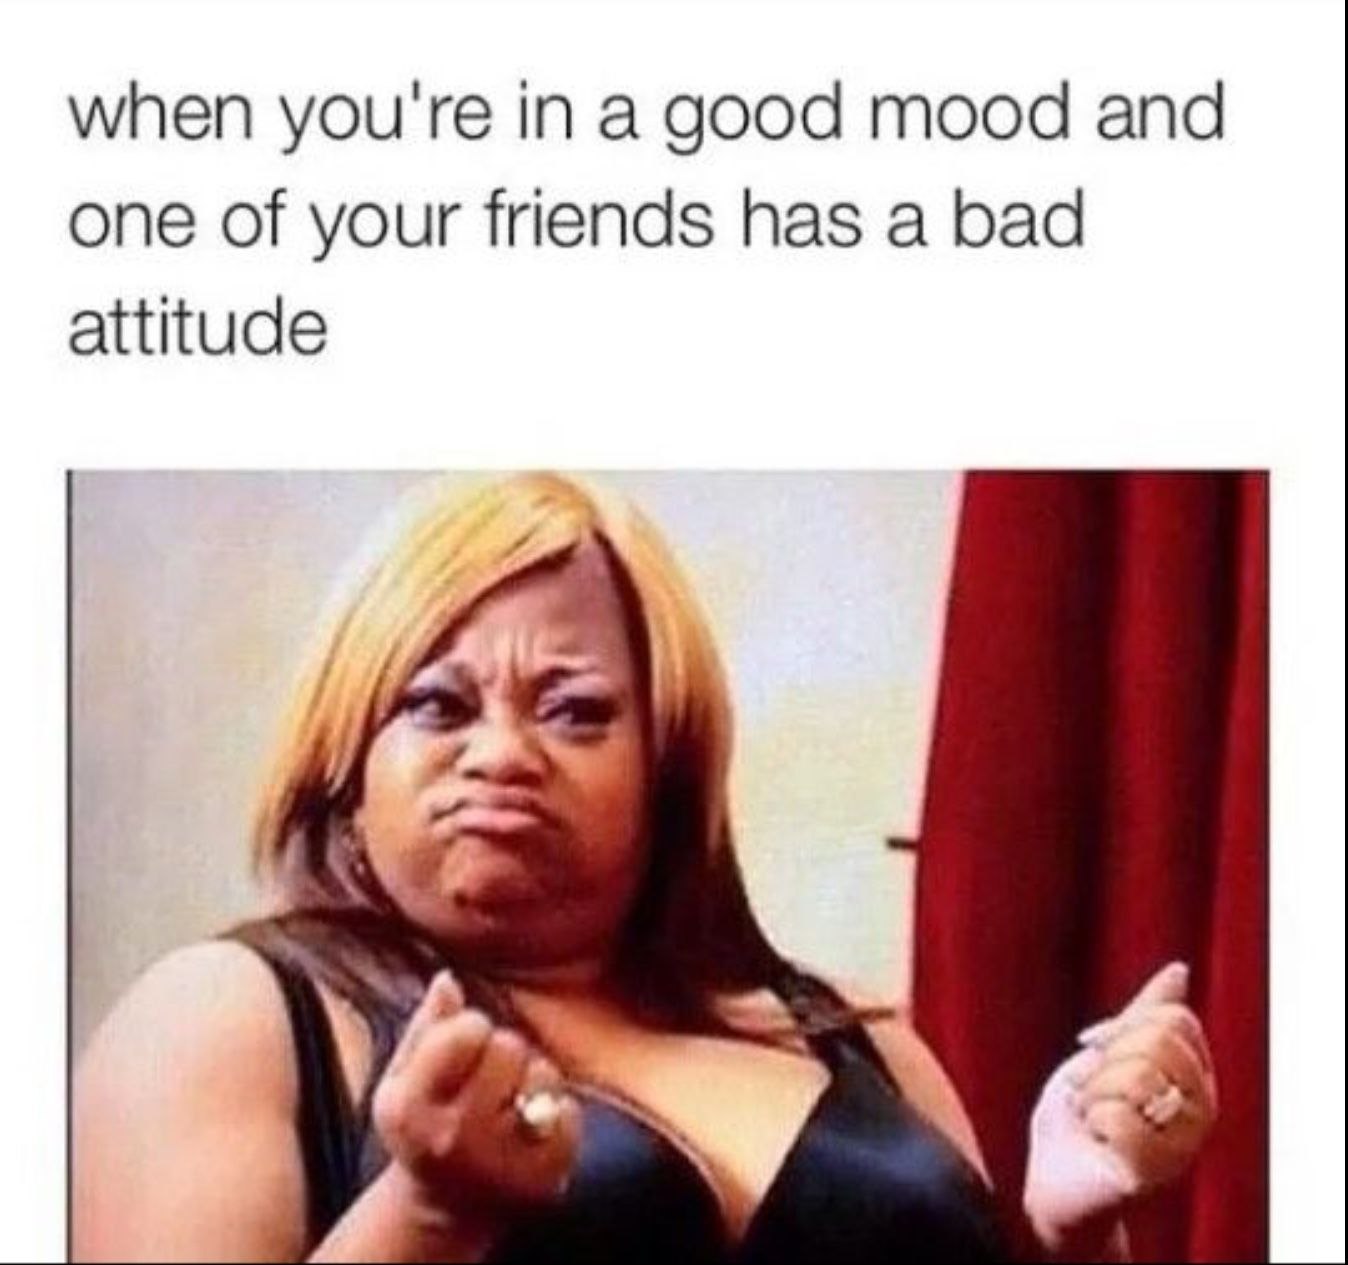 Pin By Tia Bryant On Funny Funny Quotes Funny Relatable Memes Memes